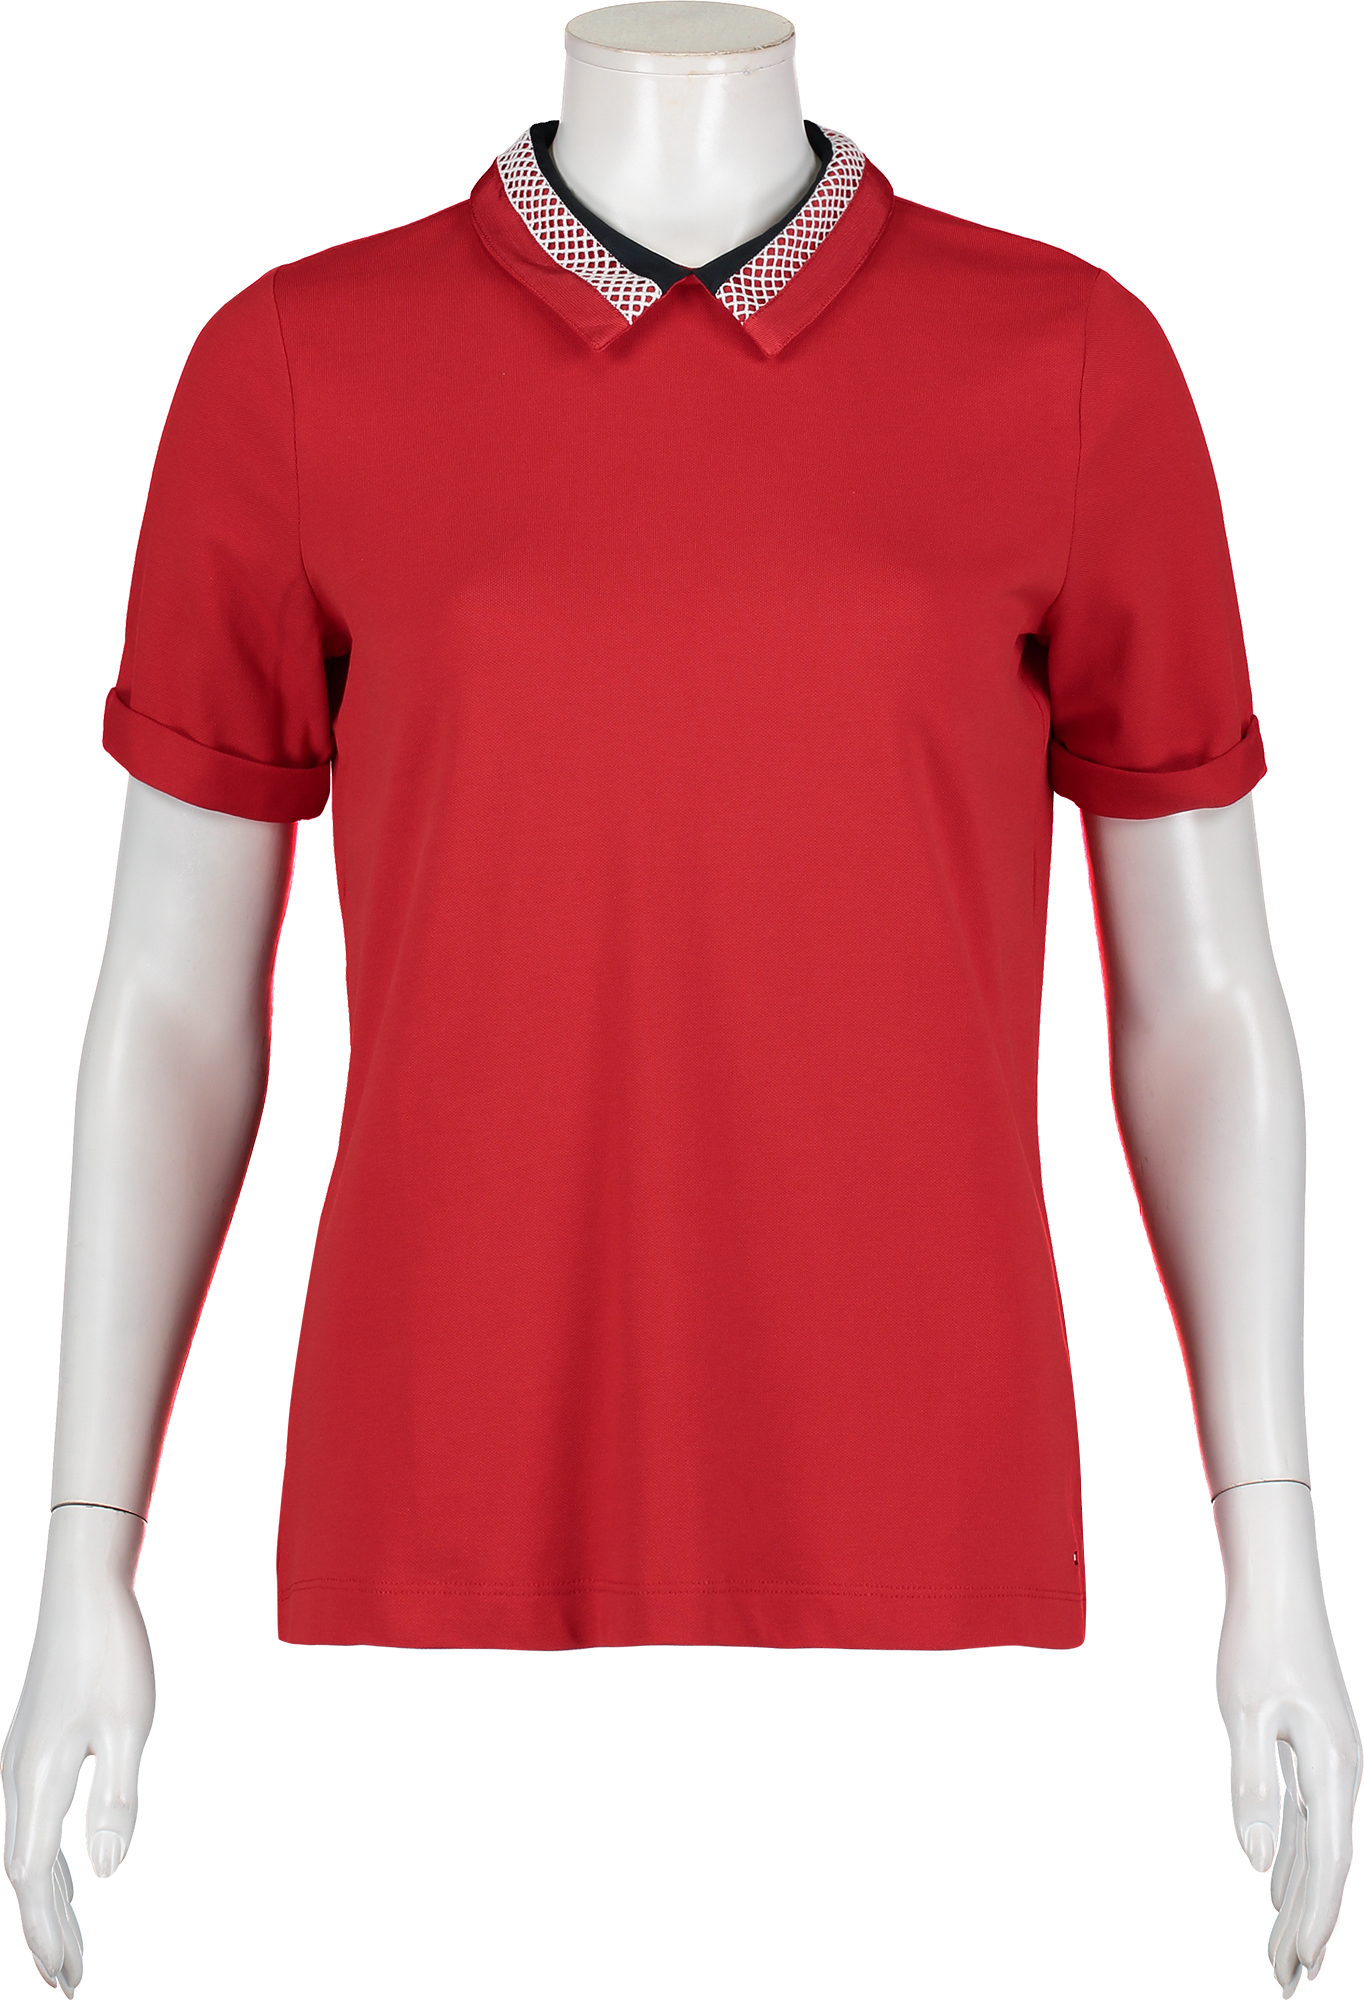 Piet Zoomers Tommy Hilfiger Jeans dames polo